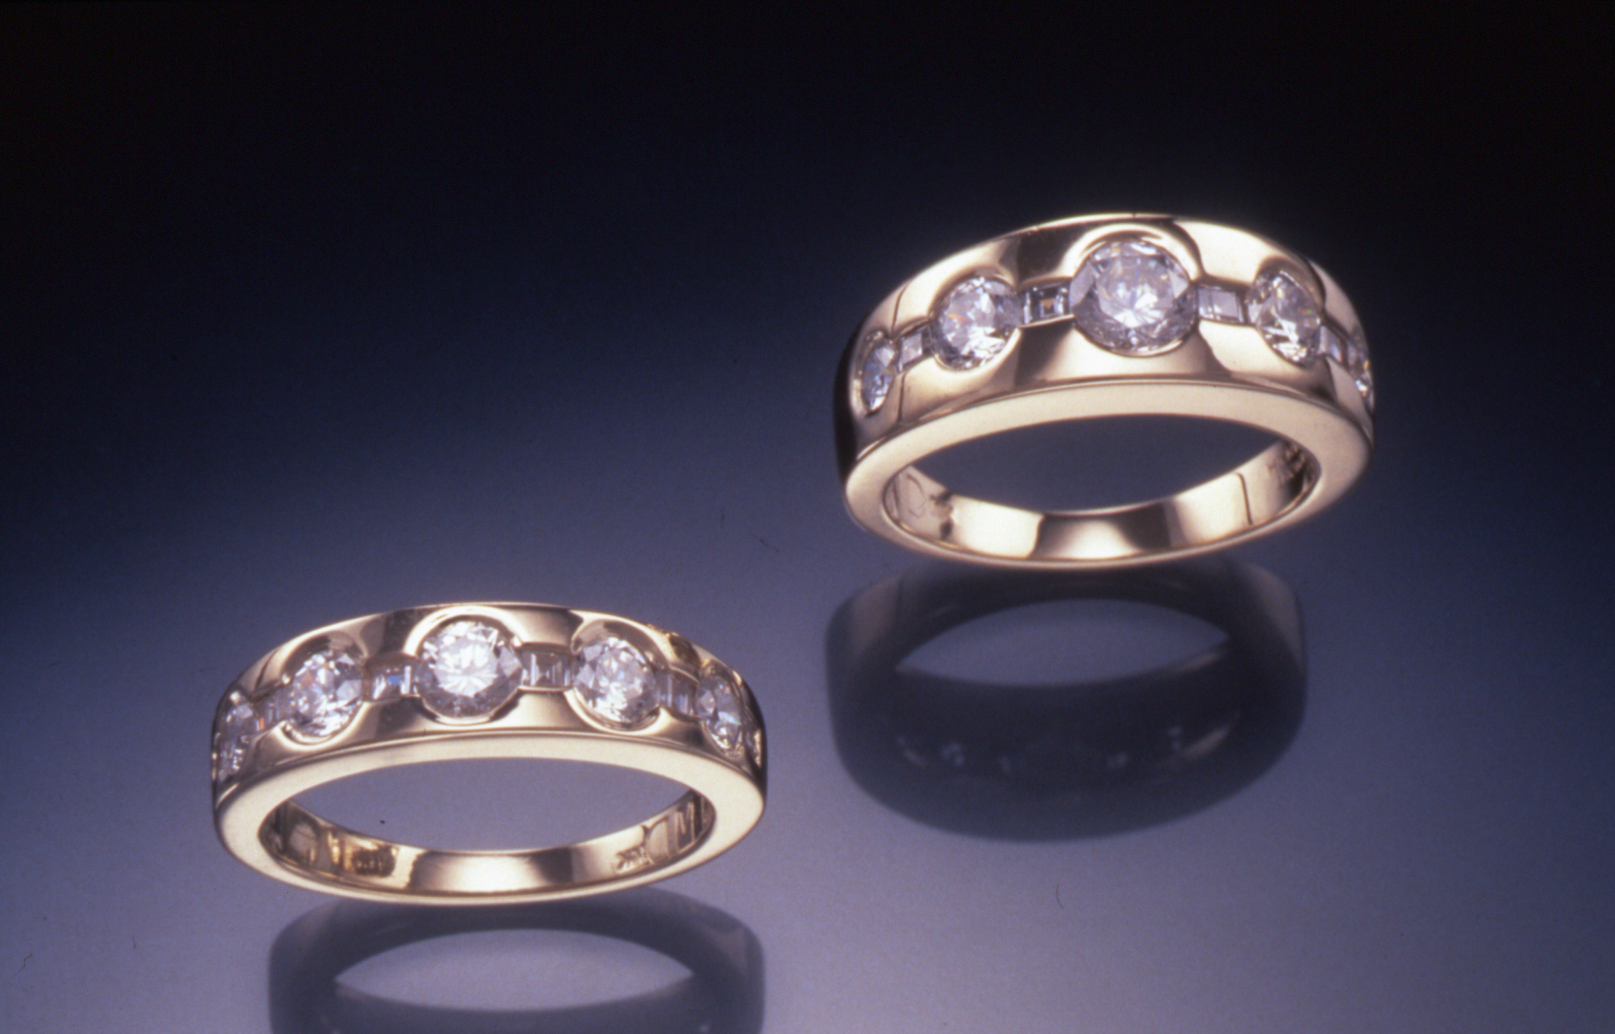 Kt yellow gold ring set with round brilliant shape diamonds and